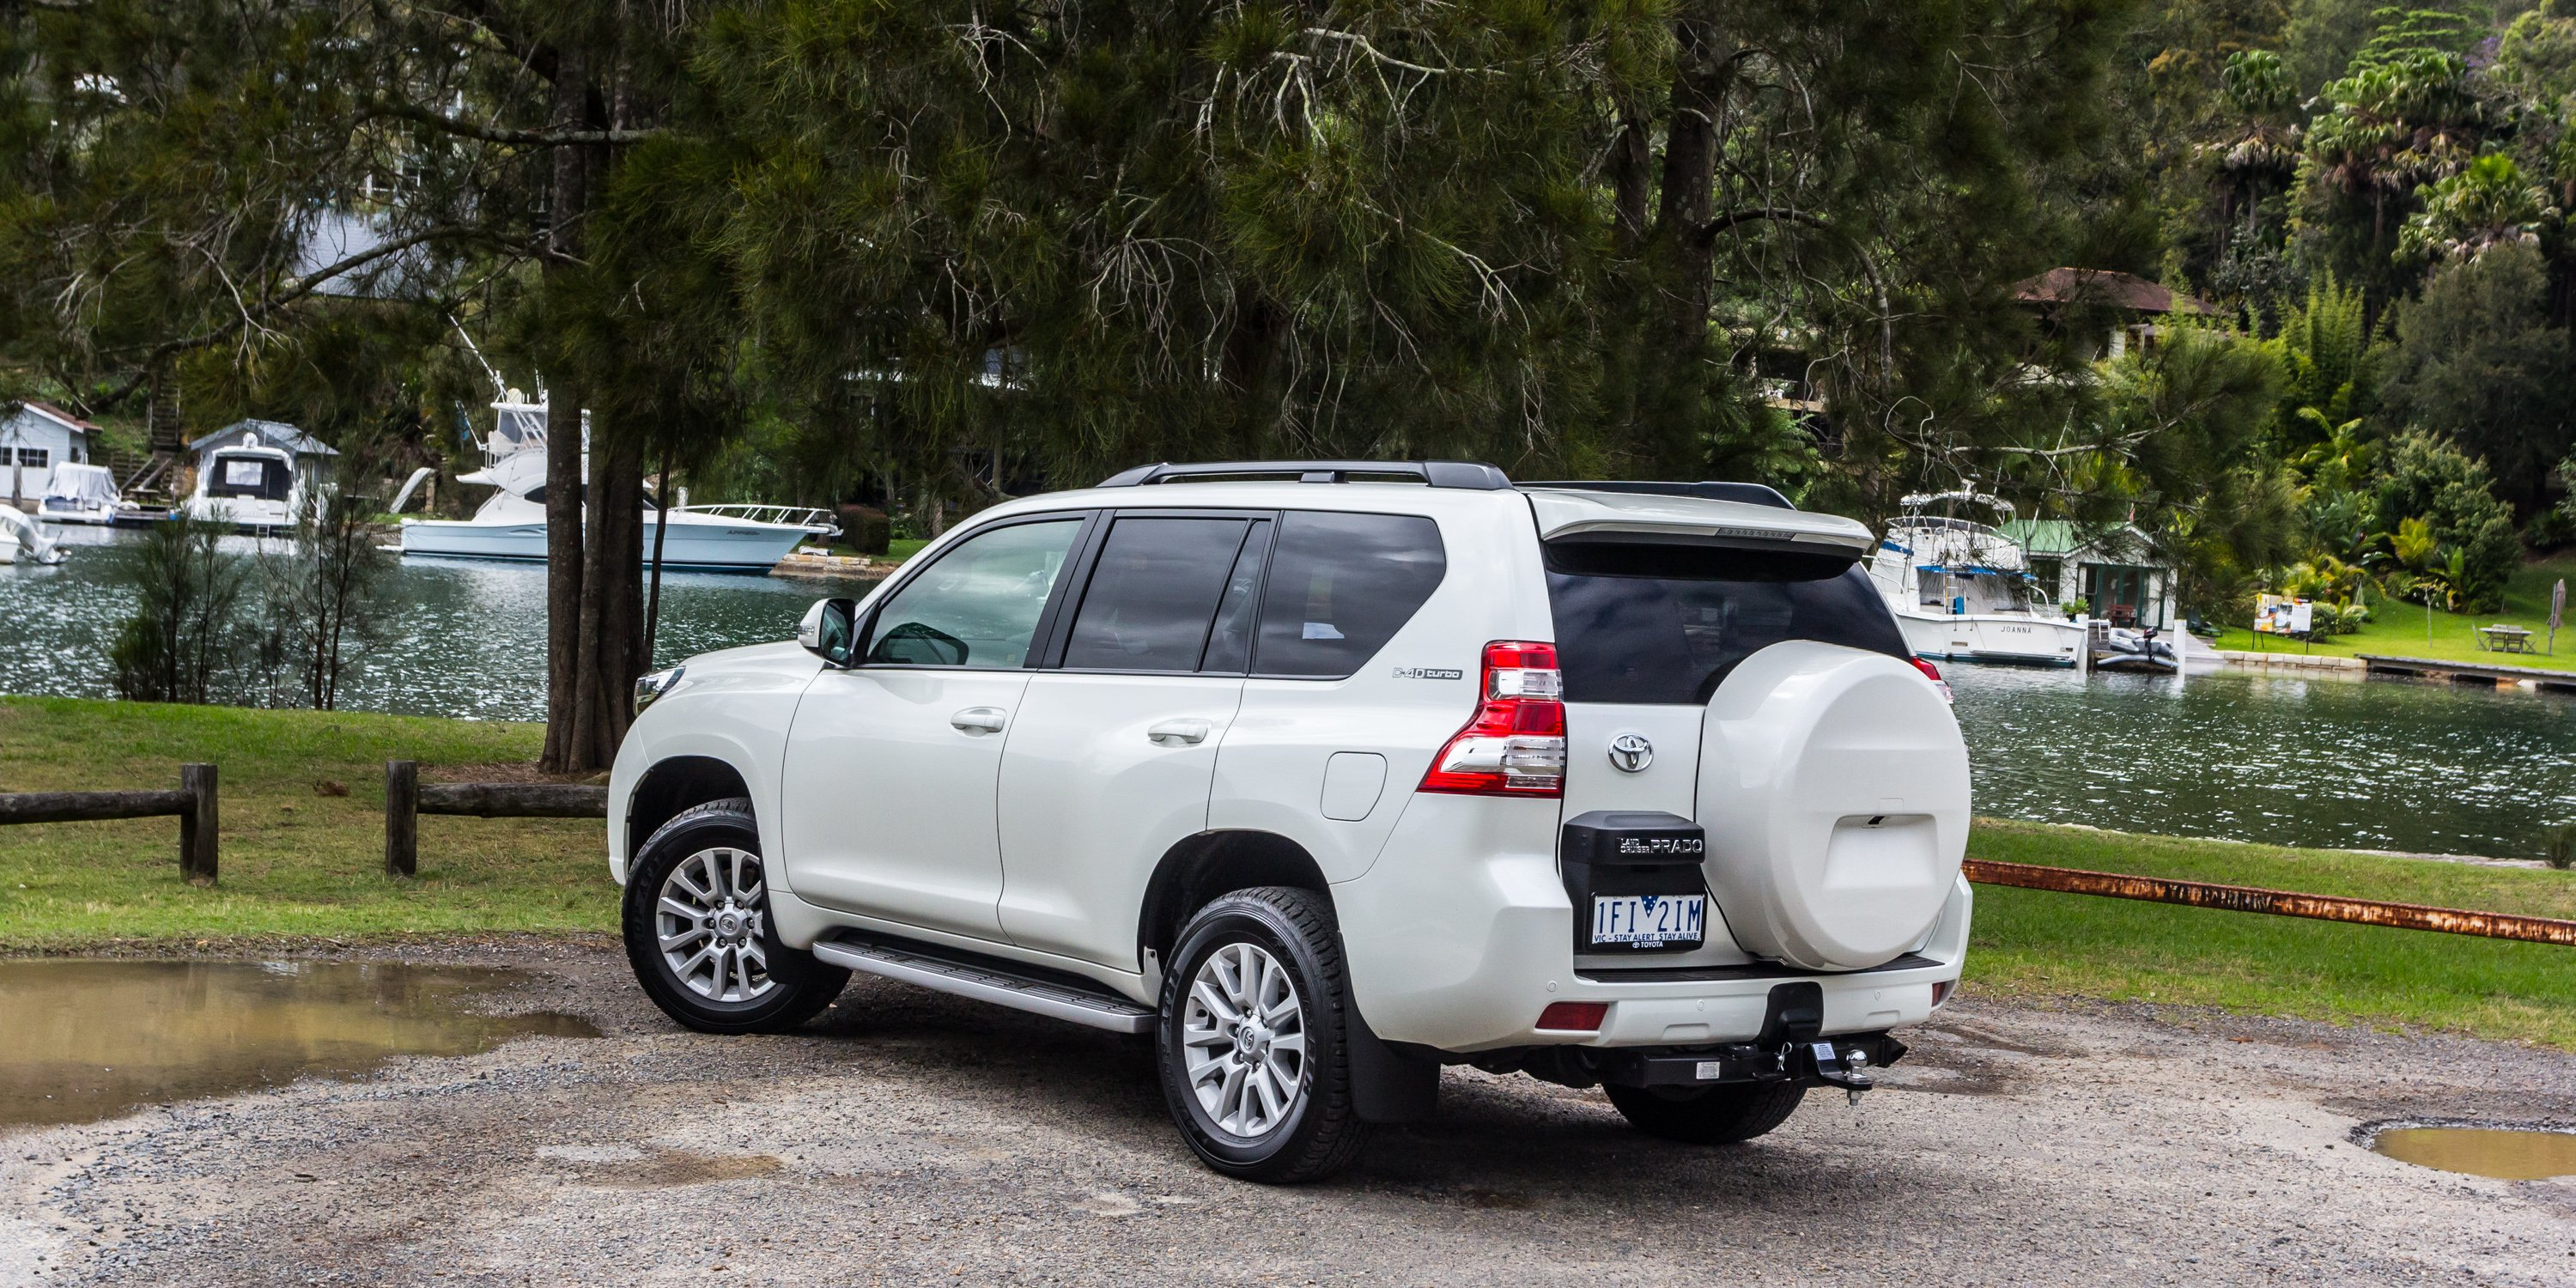 2016 Toyota Landcruiser Prado Vx Long Term Report One